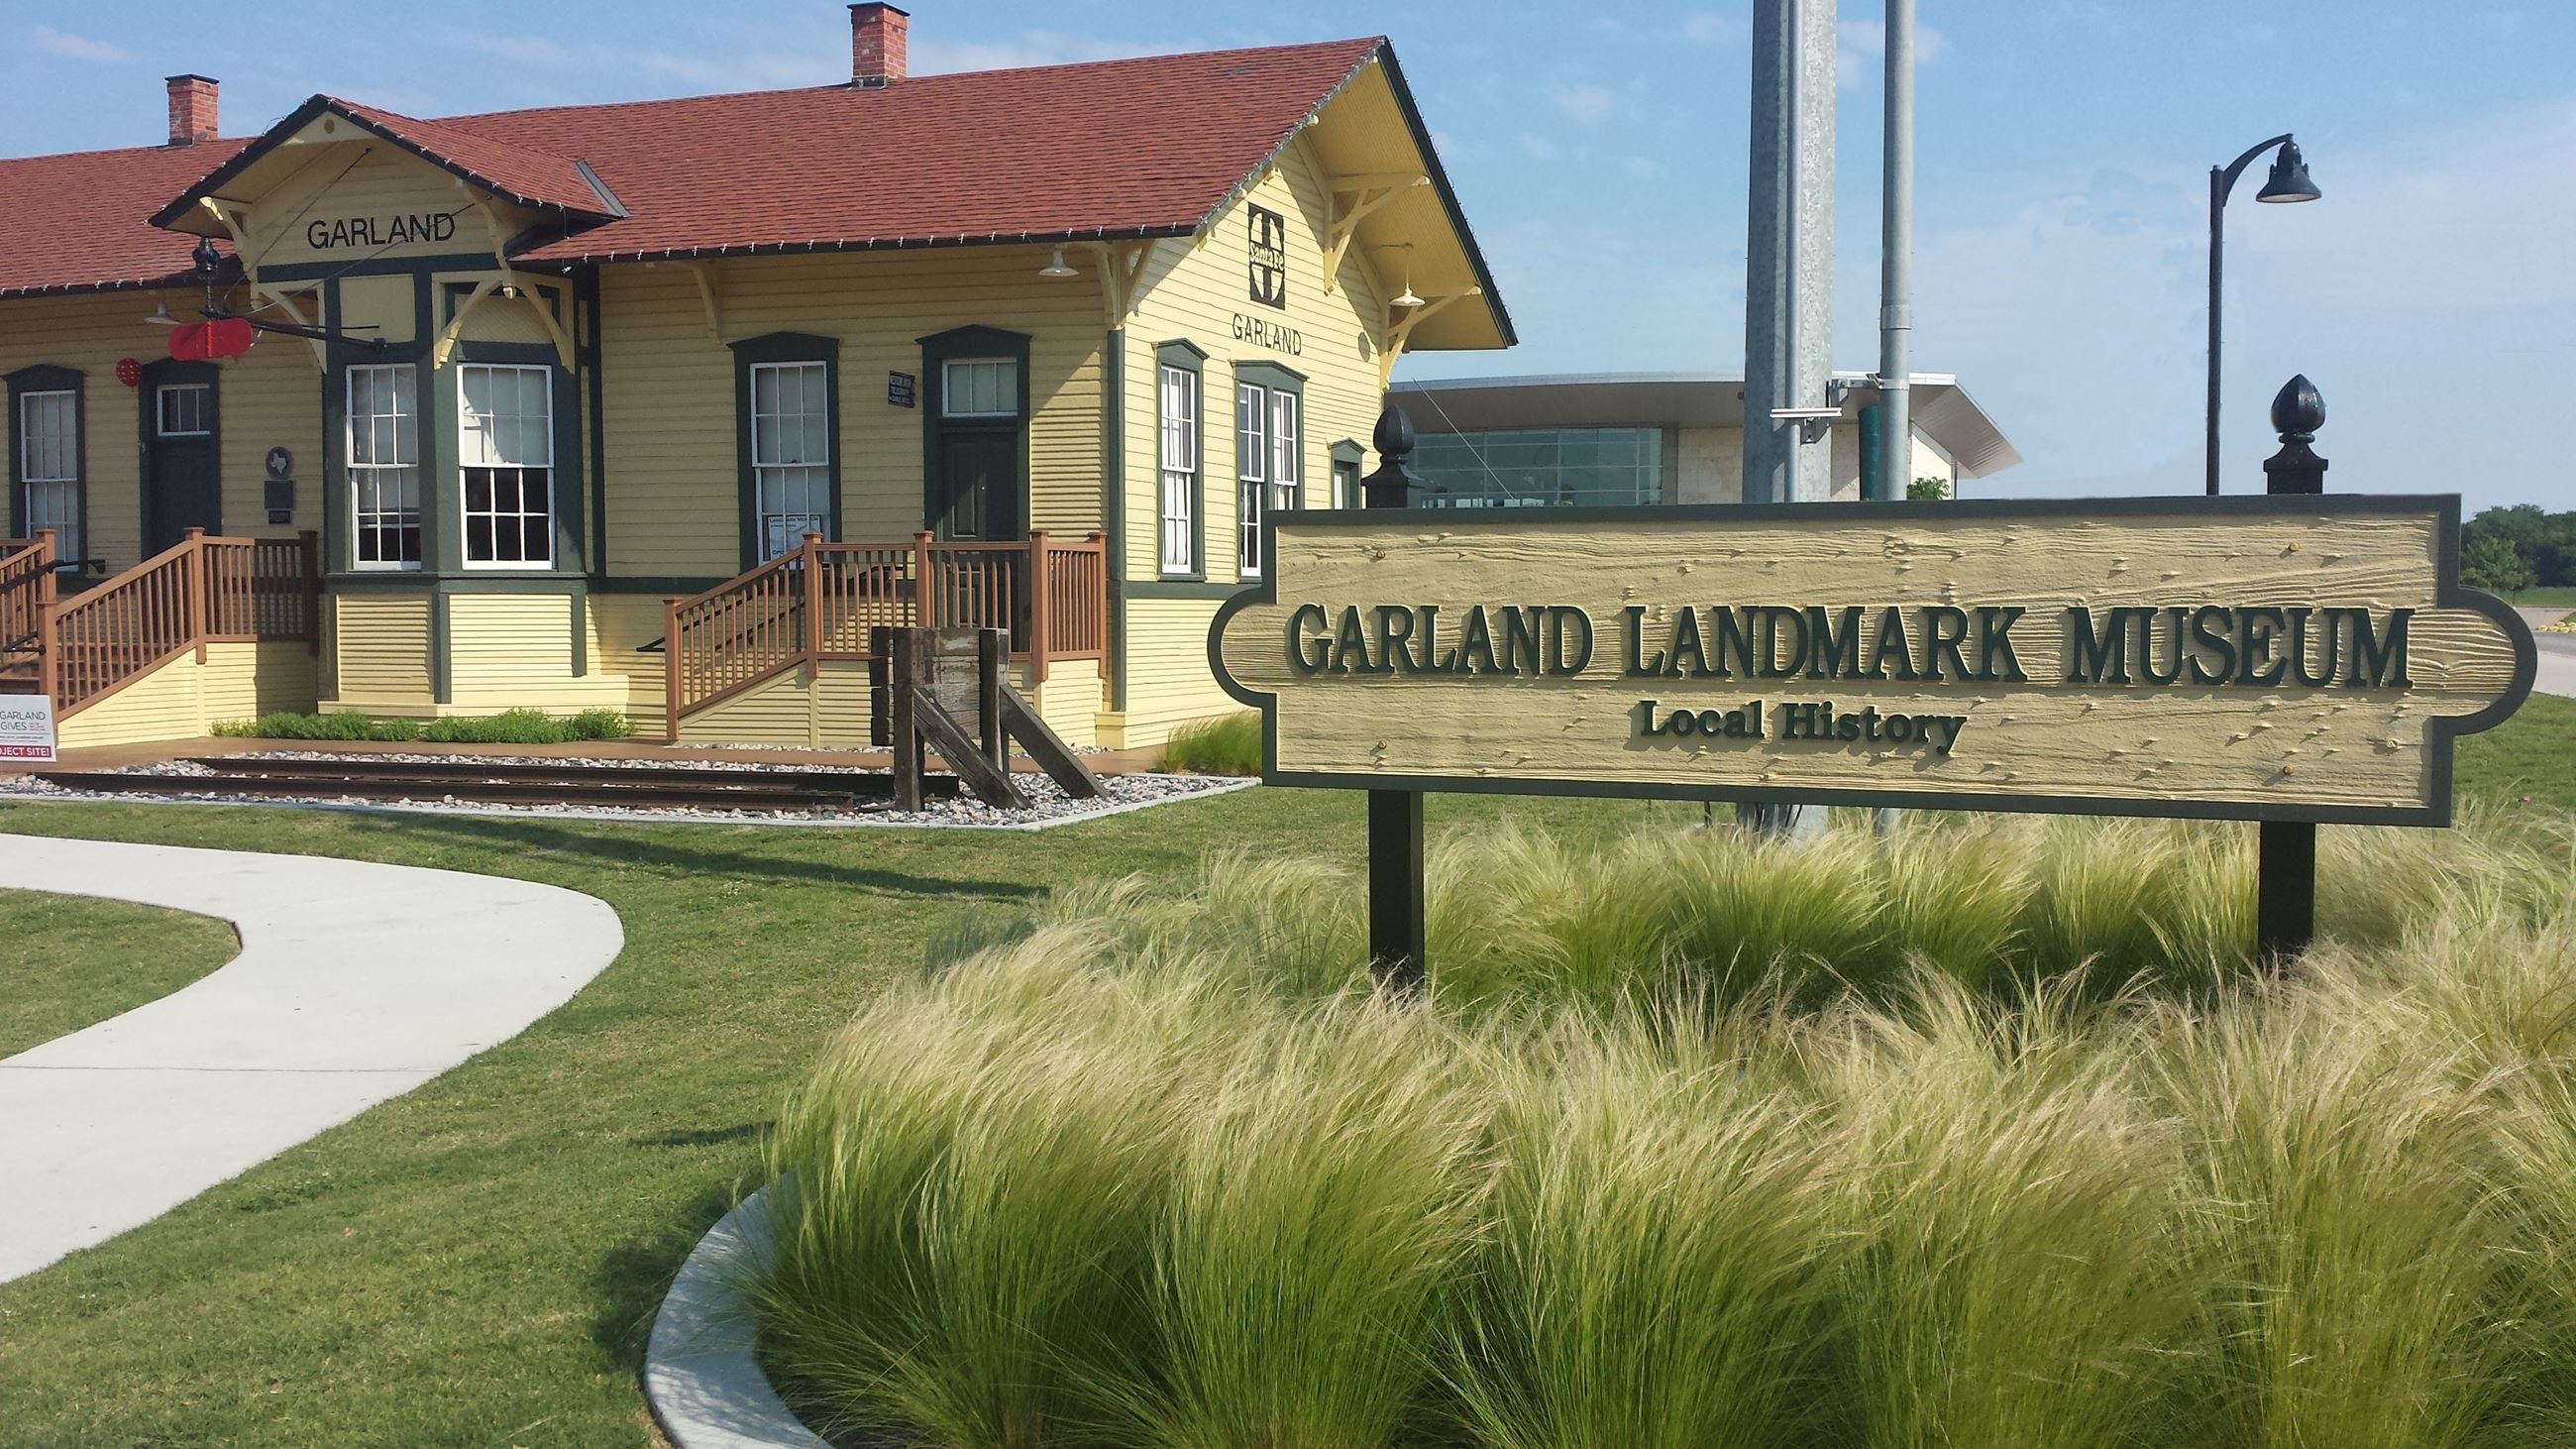 Garland Landmark Museum with Waving Grass in Front